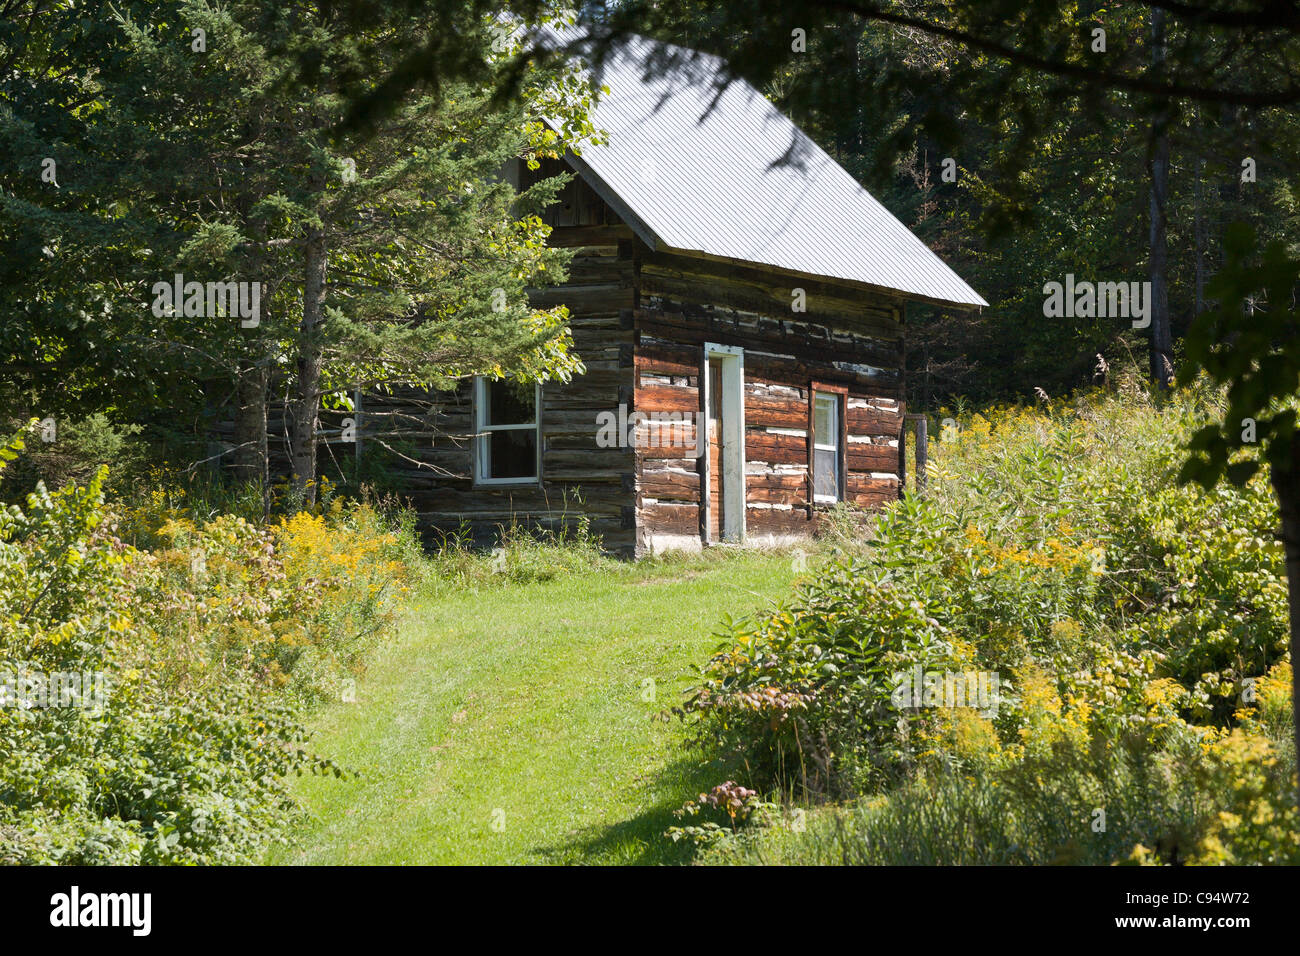 Old Log Cabin, new steel roof. A weathered old pioneer log cabin topped with a crisp silver steel roof is surrounded Stock Photo